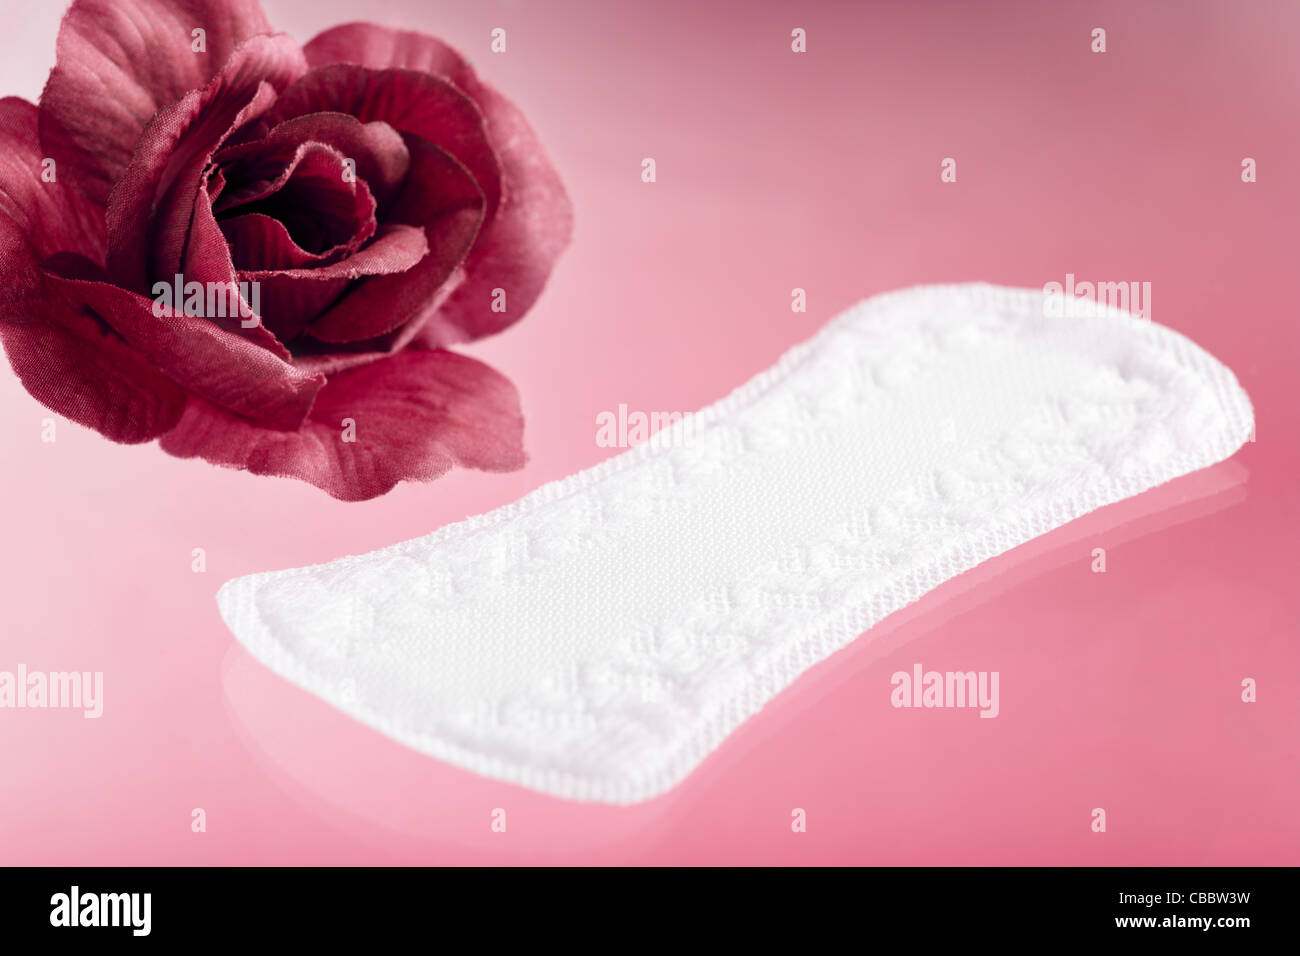 Panty Liner with Rose on Pink Background - Stock Image